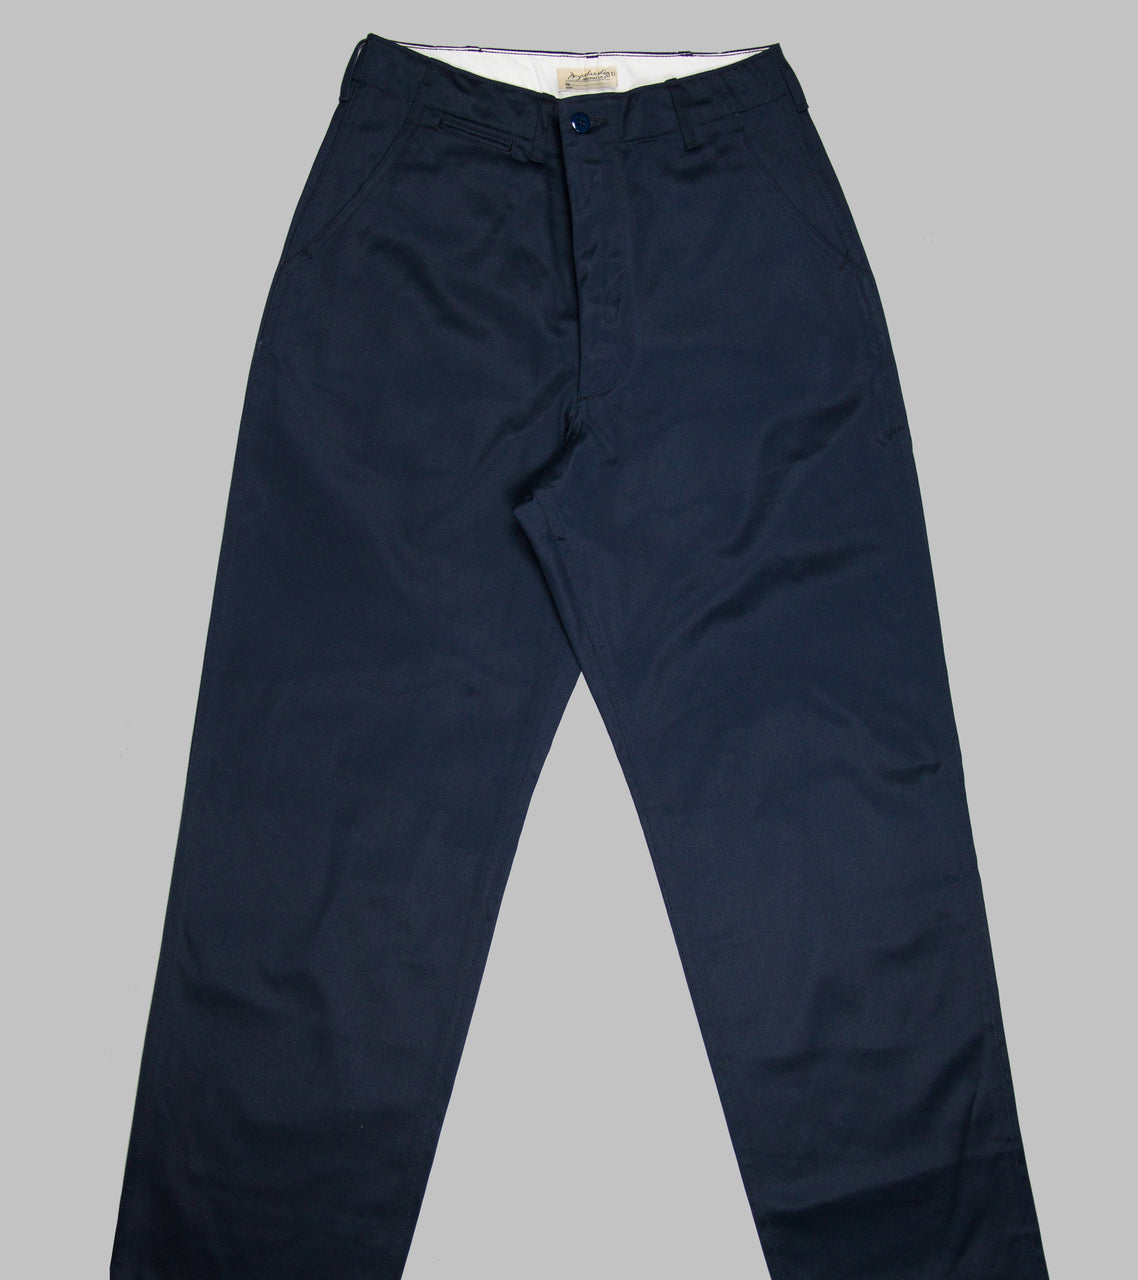 Bryceland's Army Chinos Navy